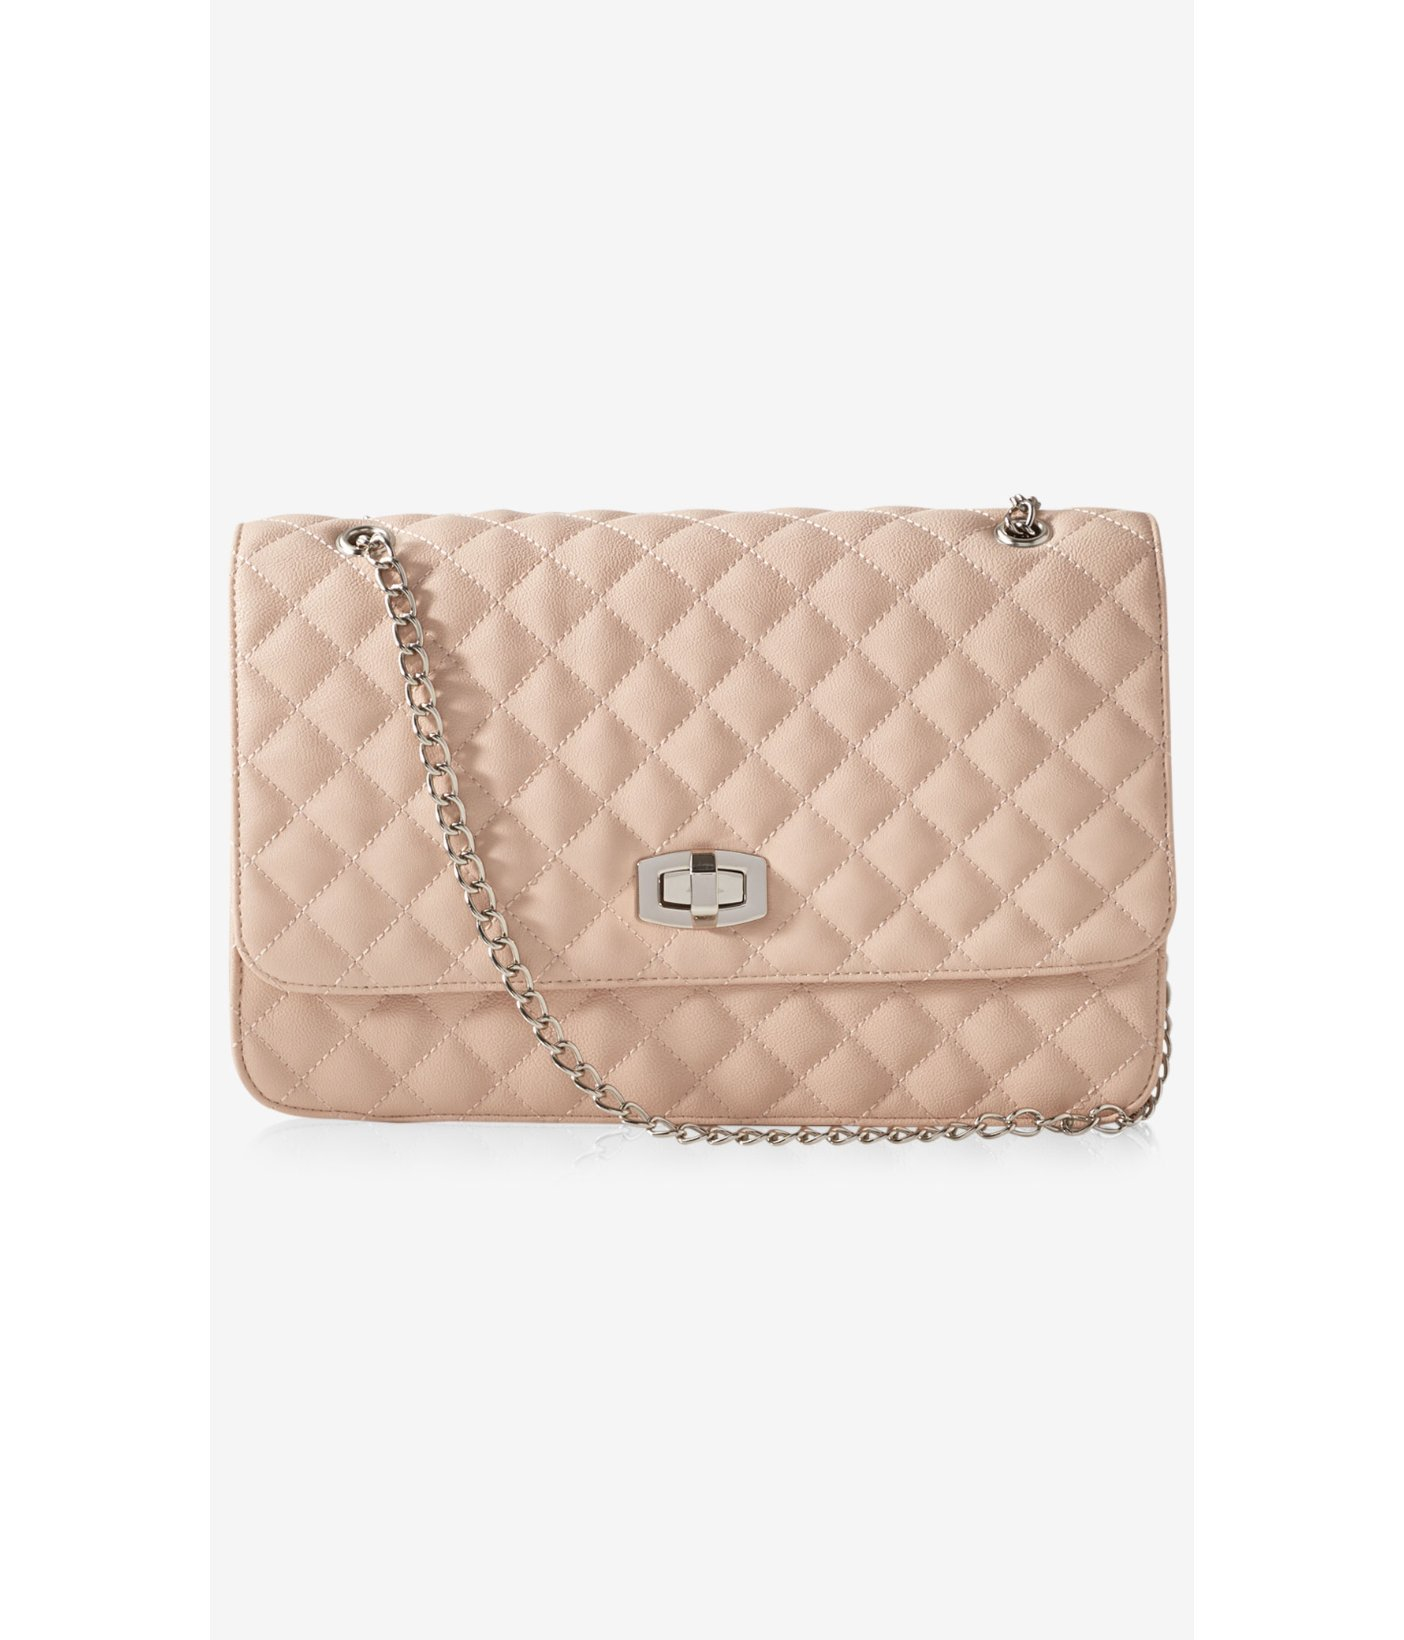 Express Large Quilted Chain Strap Shoulder Bag in Natural | Lyst : quilted handbag with chain strap - Adamdwight.com